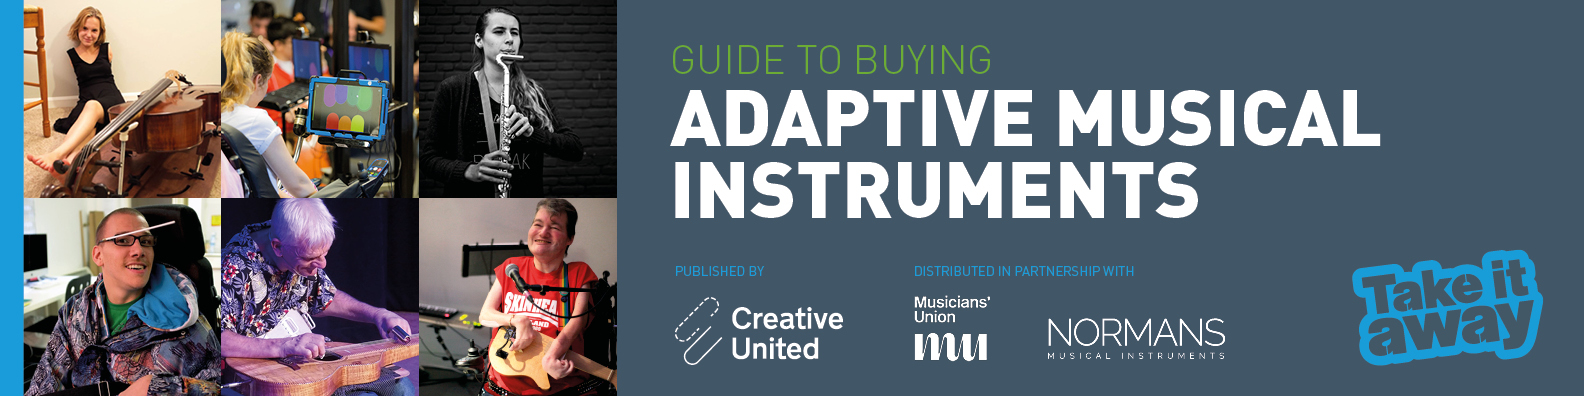 Adaptive Musical Instruments Guide cover image text